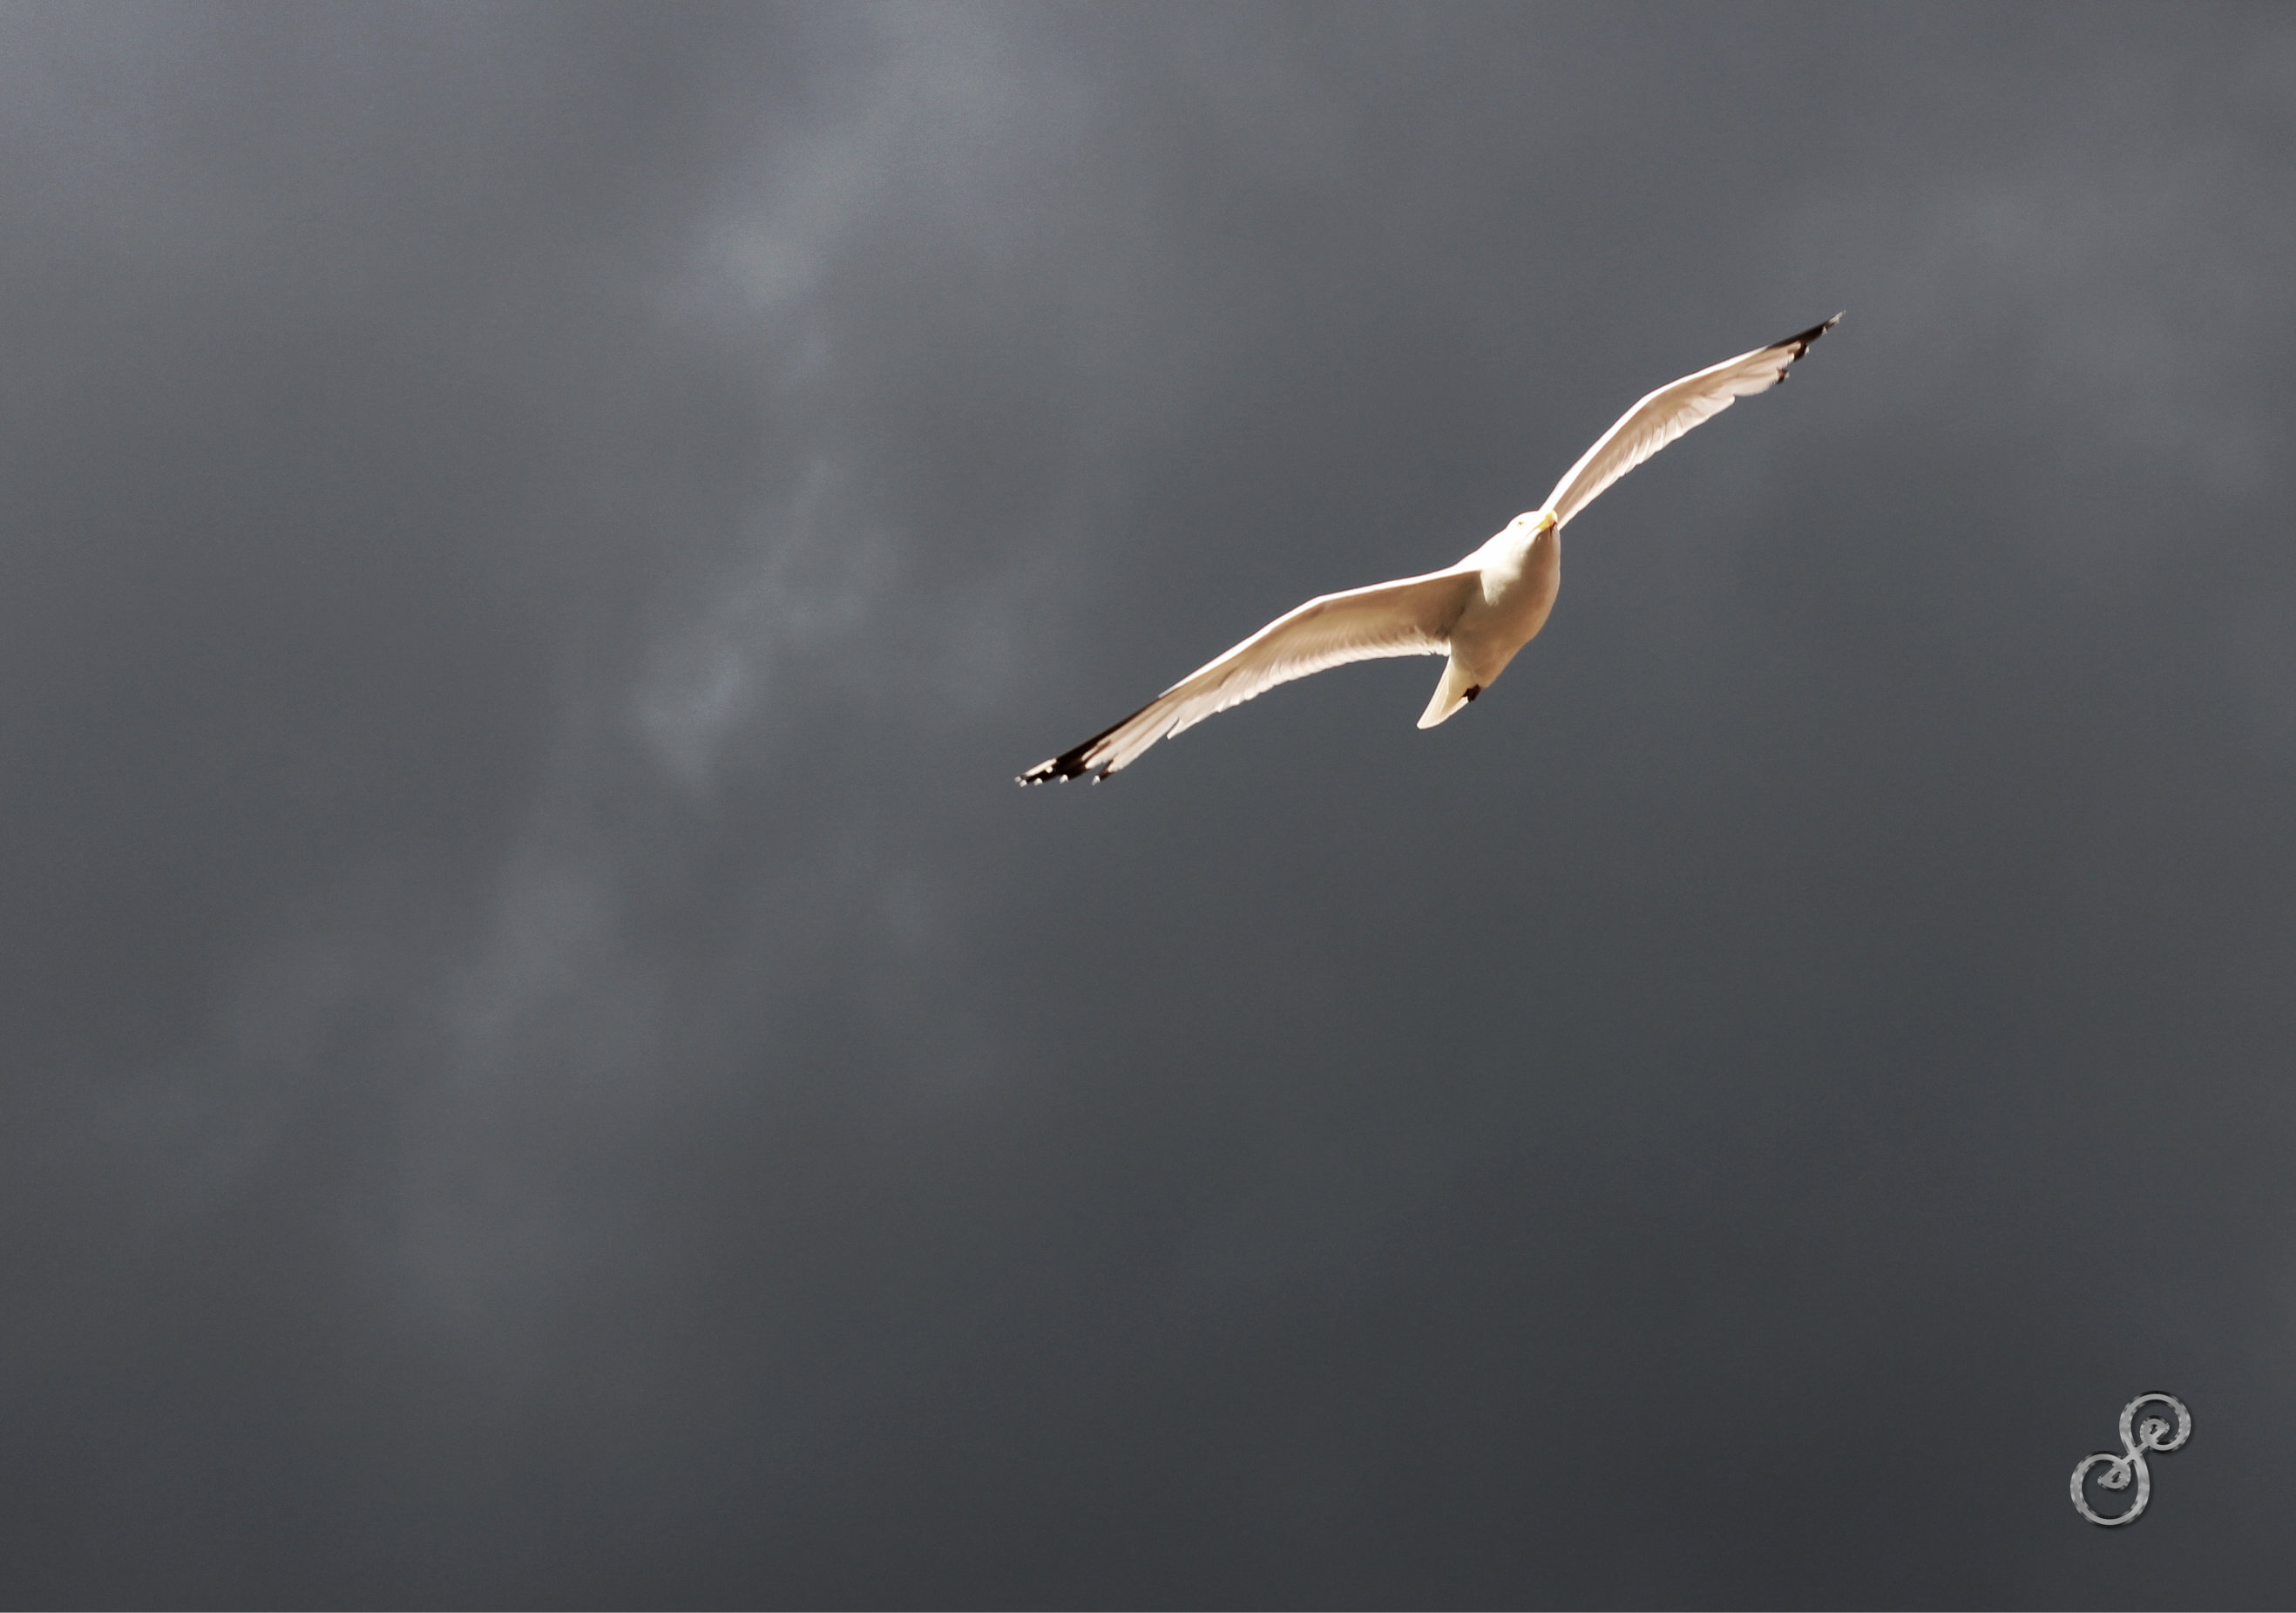 Stormy dark sky with a sunlight seagull